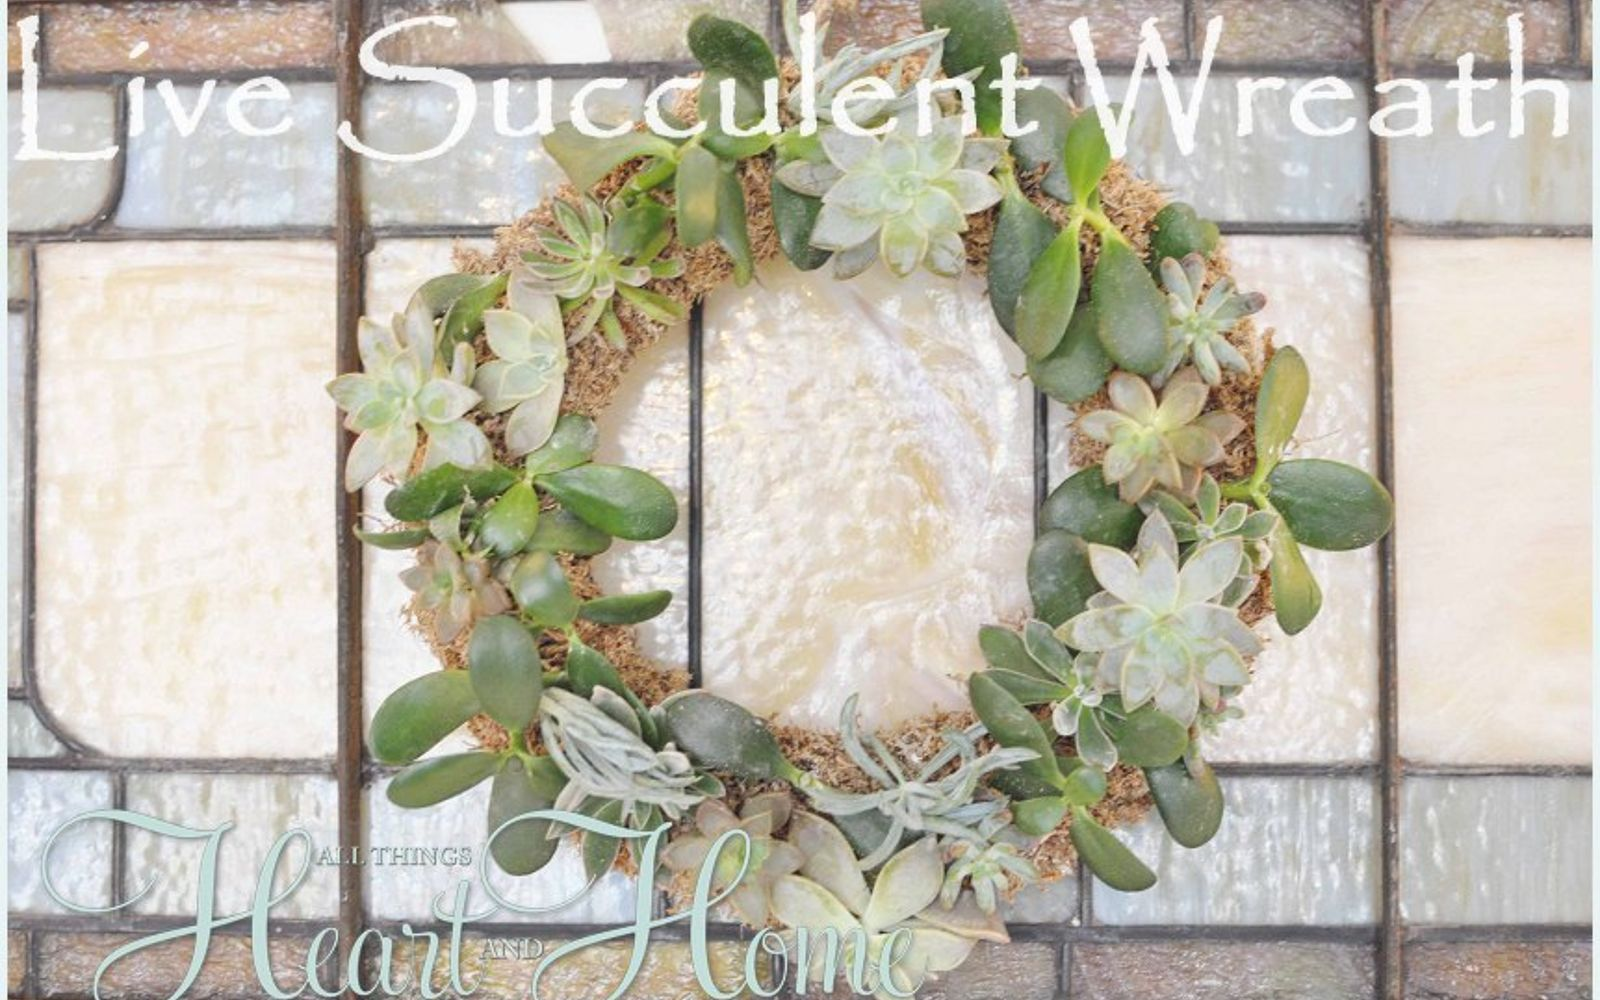 s 31 gorgeous spring wreaths that will make your neighbors smile, crafts, seasonal holiday decor, wreaths, Fill a form with a few live succulents